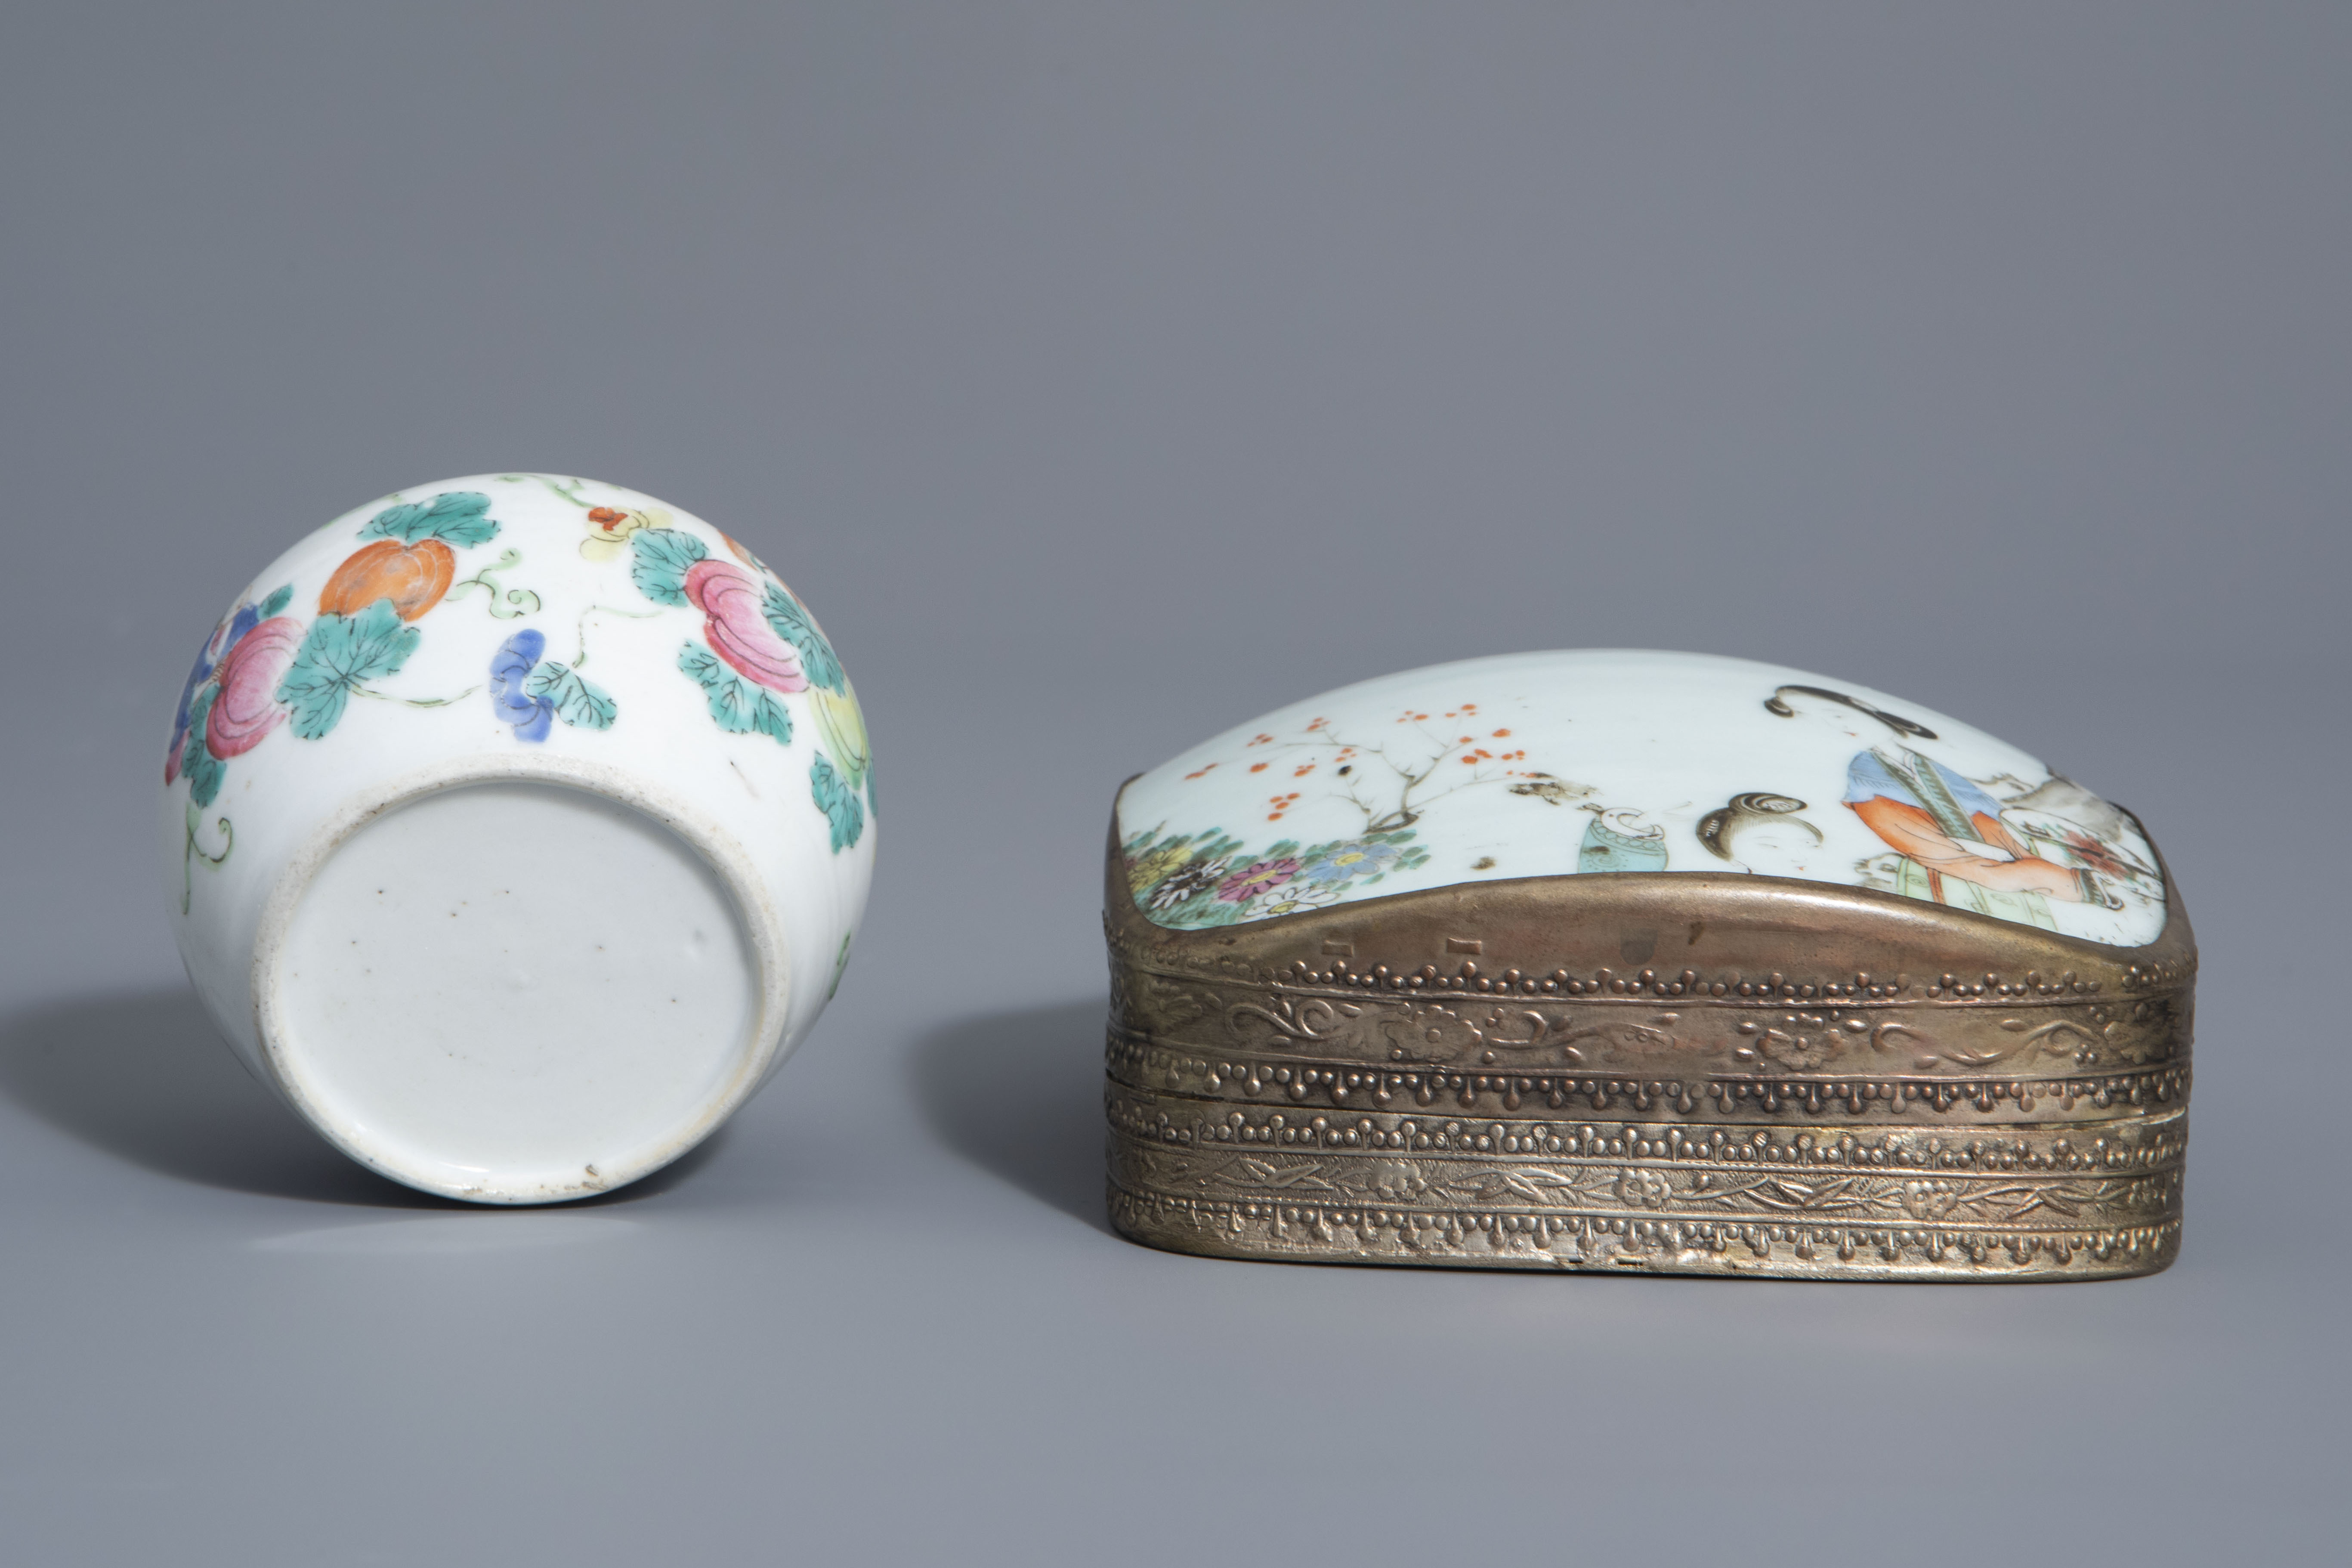 A varied collection of Chinese famille rose and blue and white porcelain, 19th/20th C. - Image 13 of 14